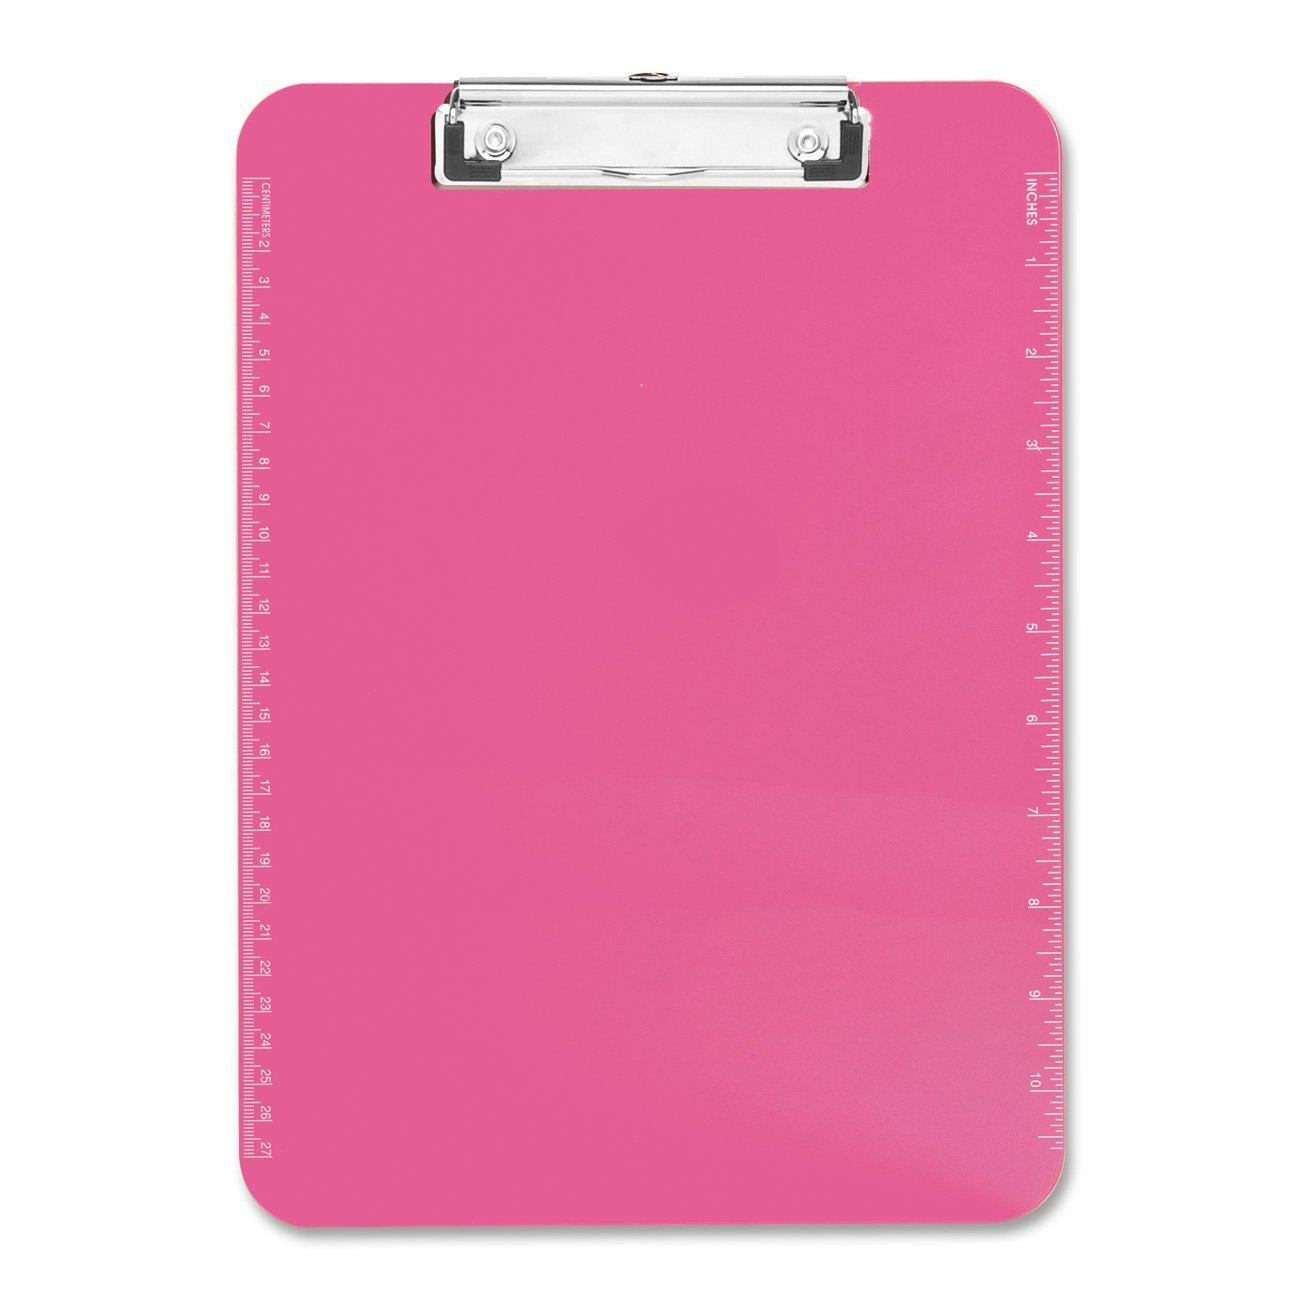 Neon Pink Transparent Plastic Clipboard